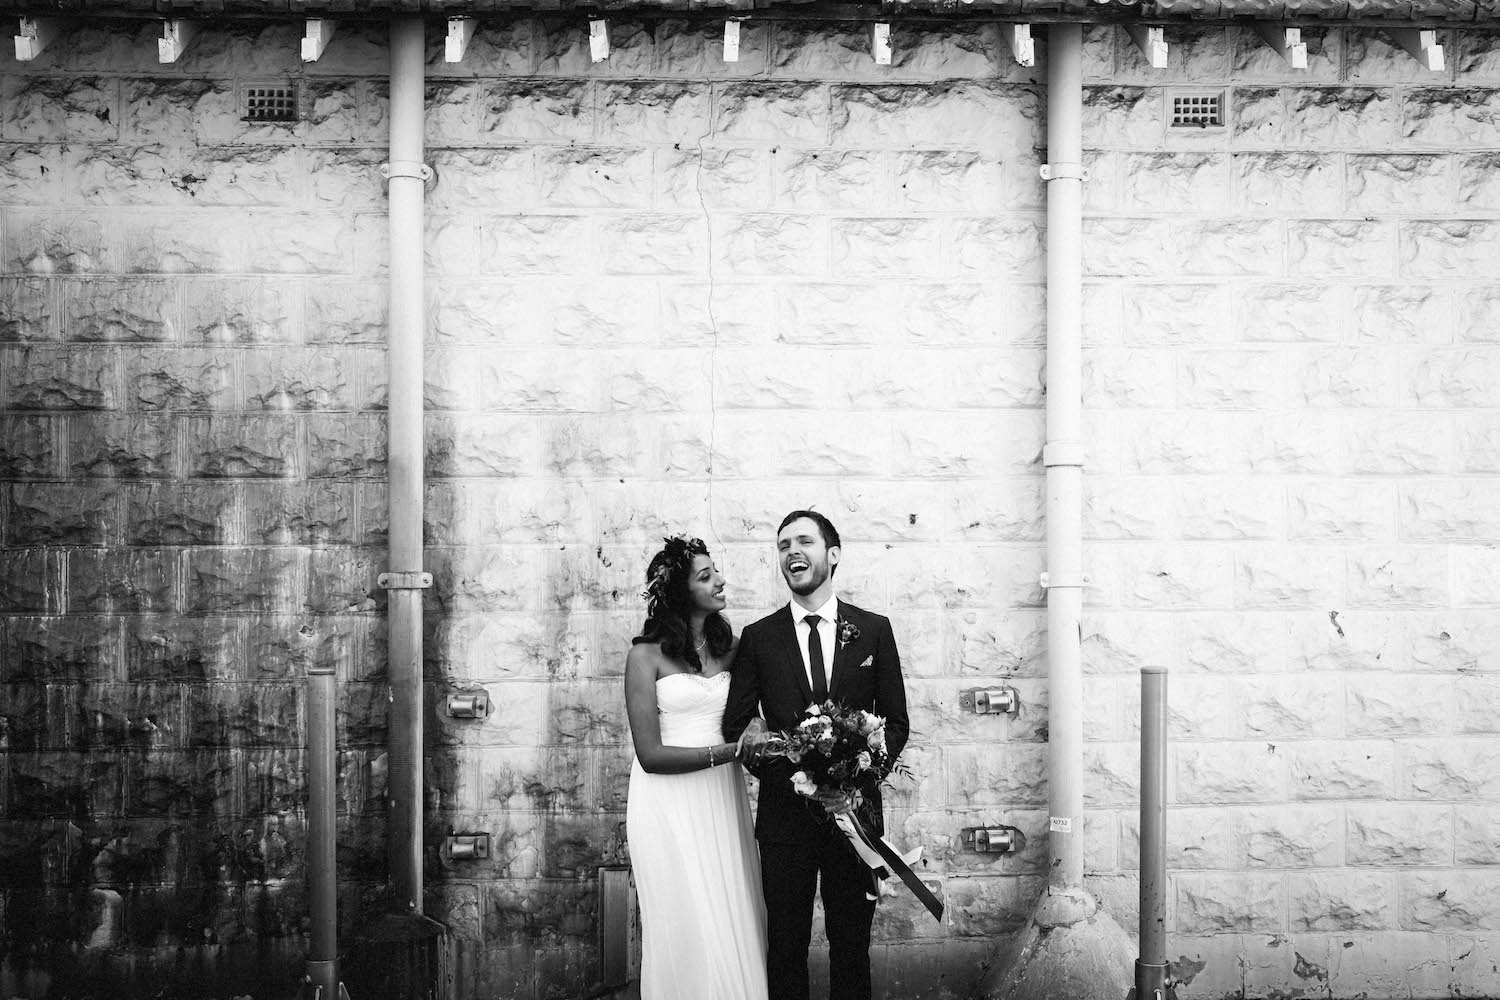 Jibb & Tripthi laugh together during their Subiaco wedding portrait session.